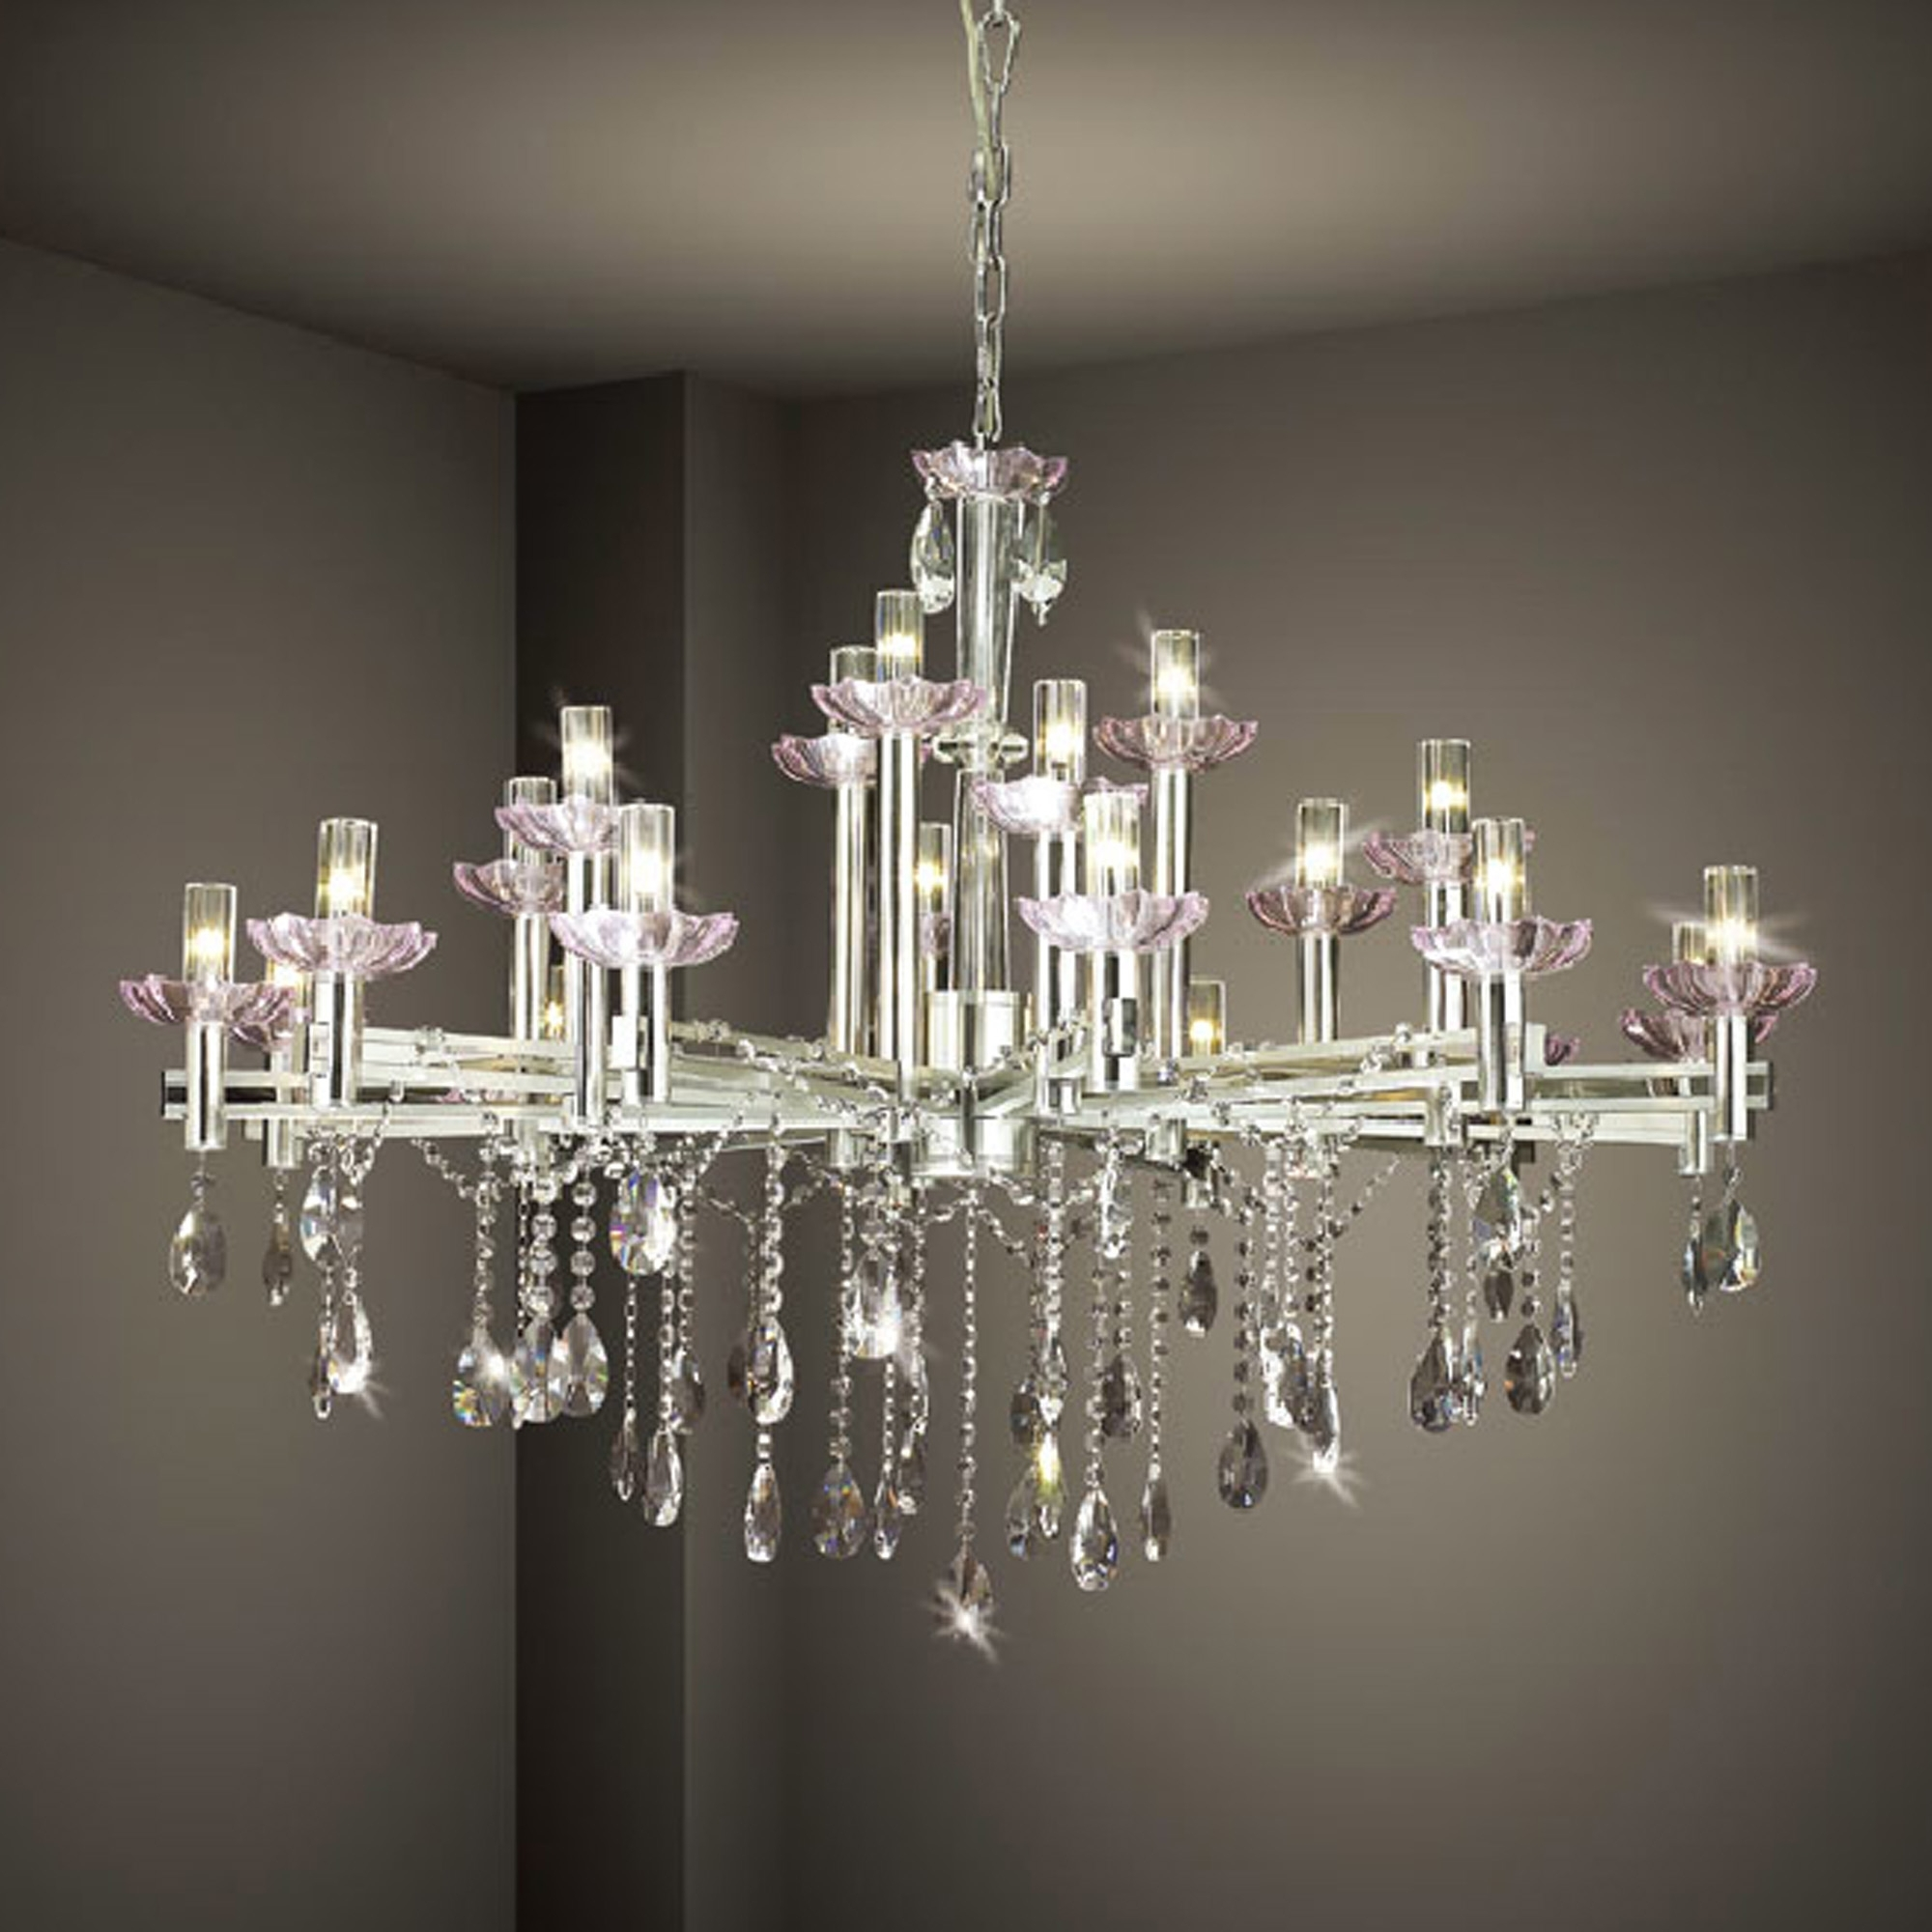 Most Popular White Contemporary Chandelier Within Chandelier: Inspiring White Modern Chandelier White And Crystal (View 8 of 15)